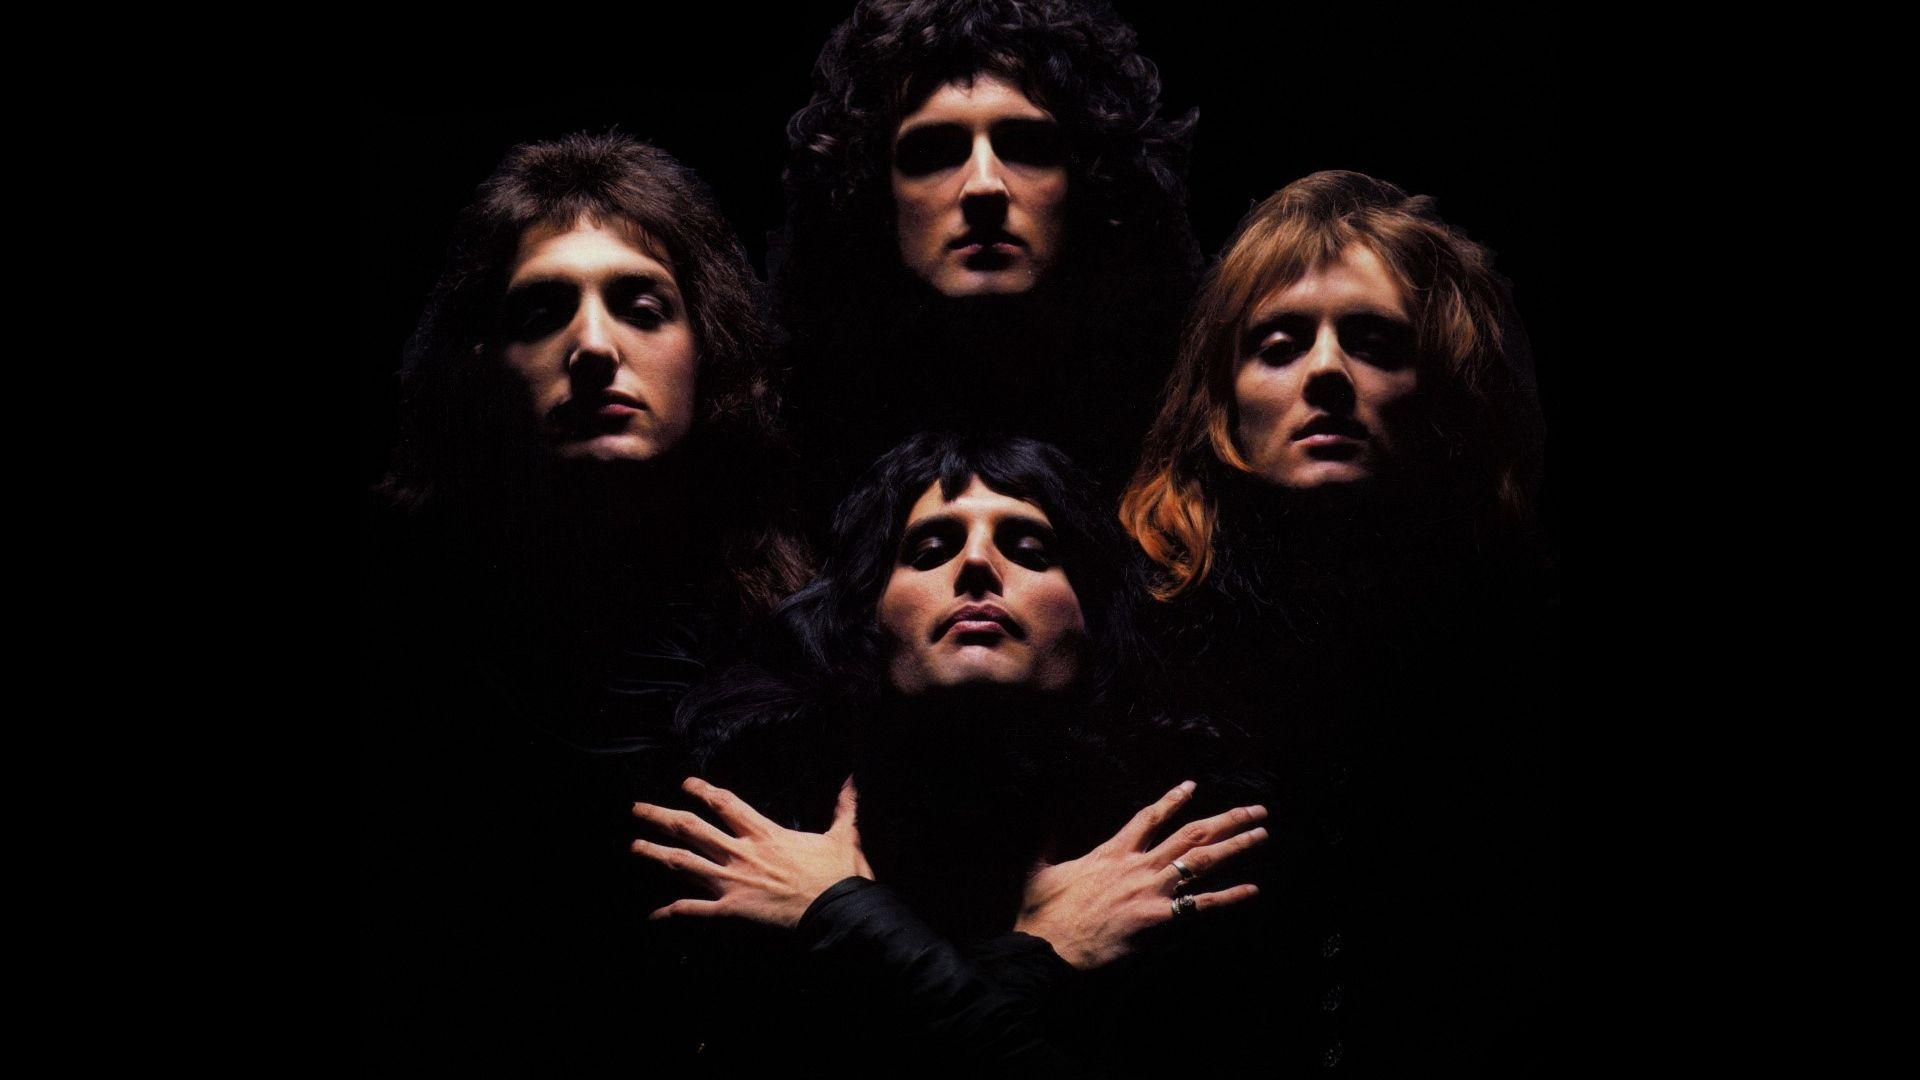 Download Wallpaper X Queen Band Members Youth Hair Full